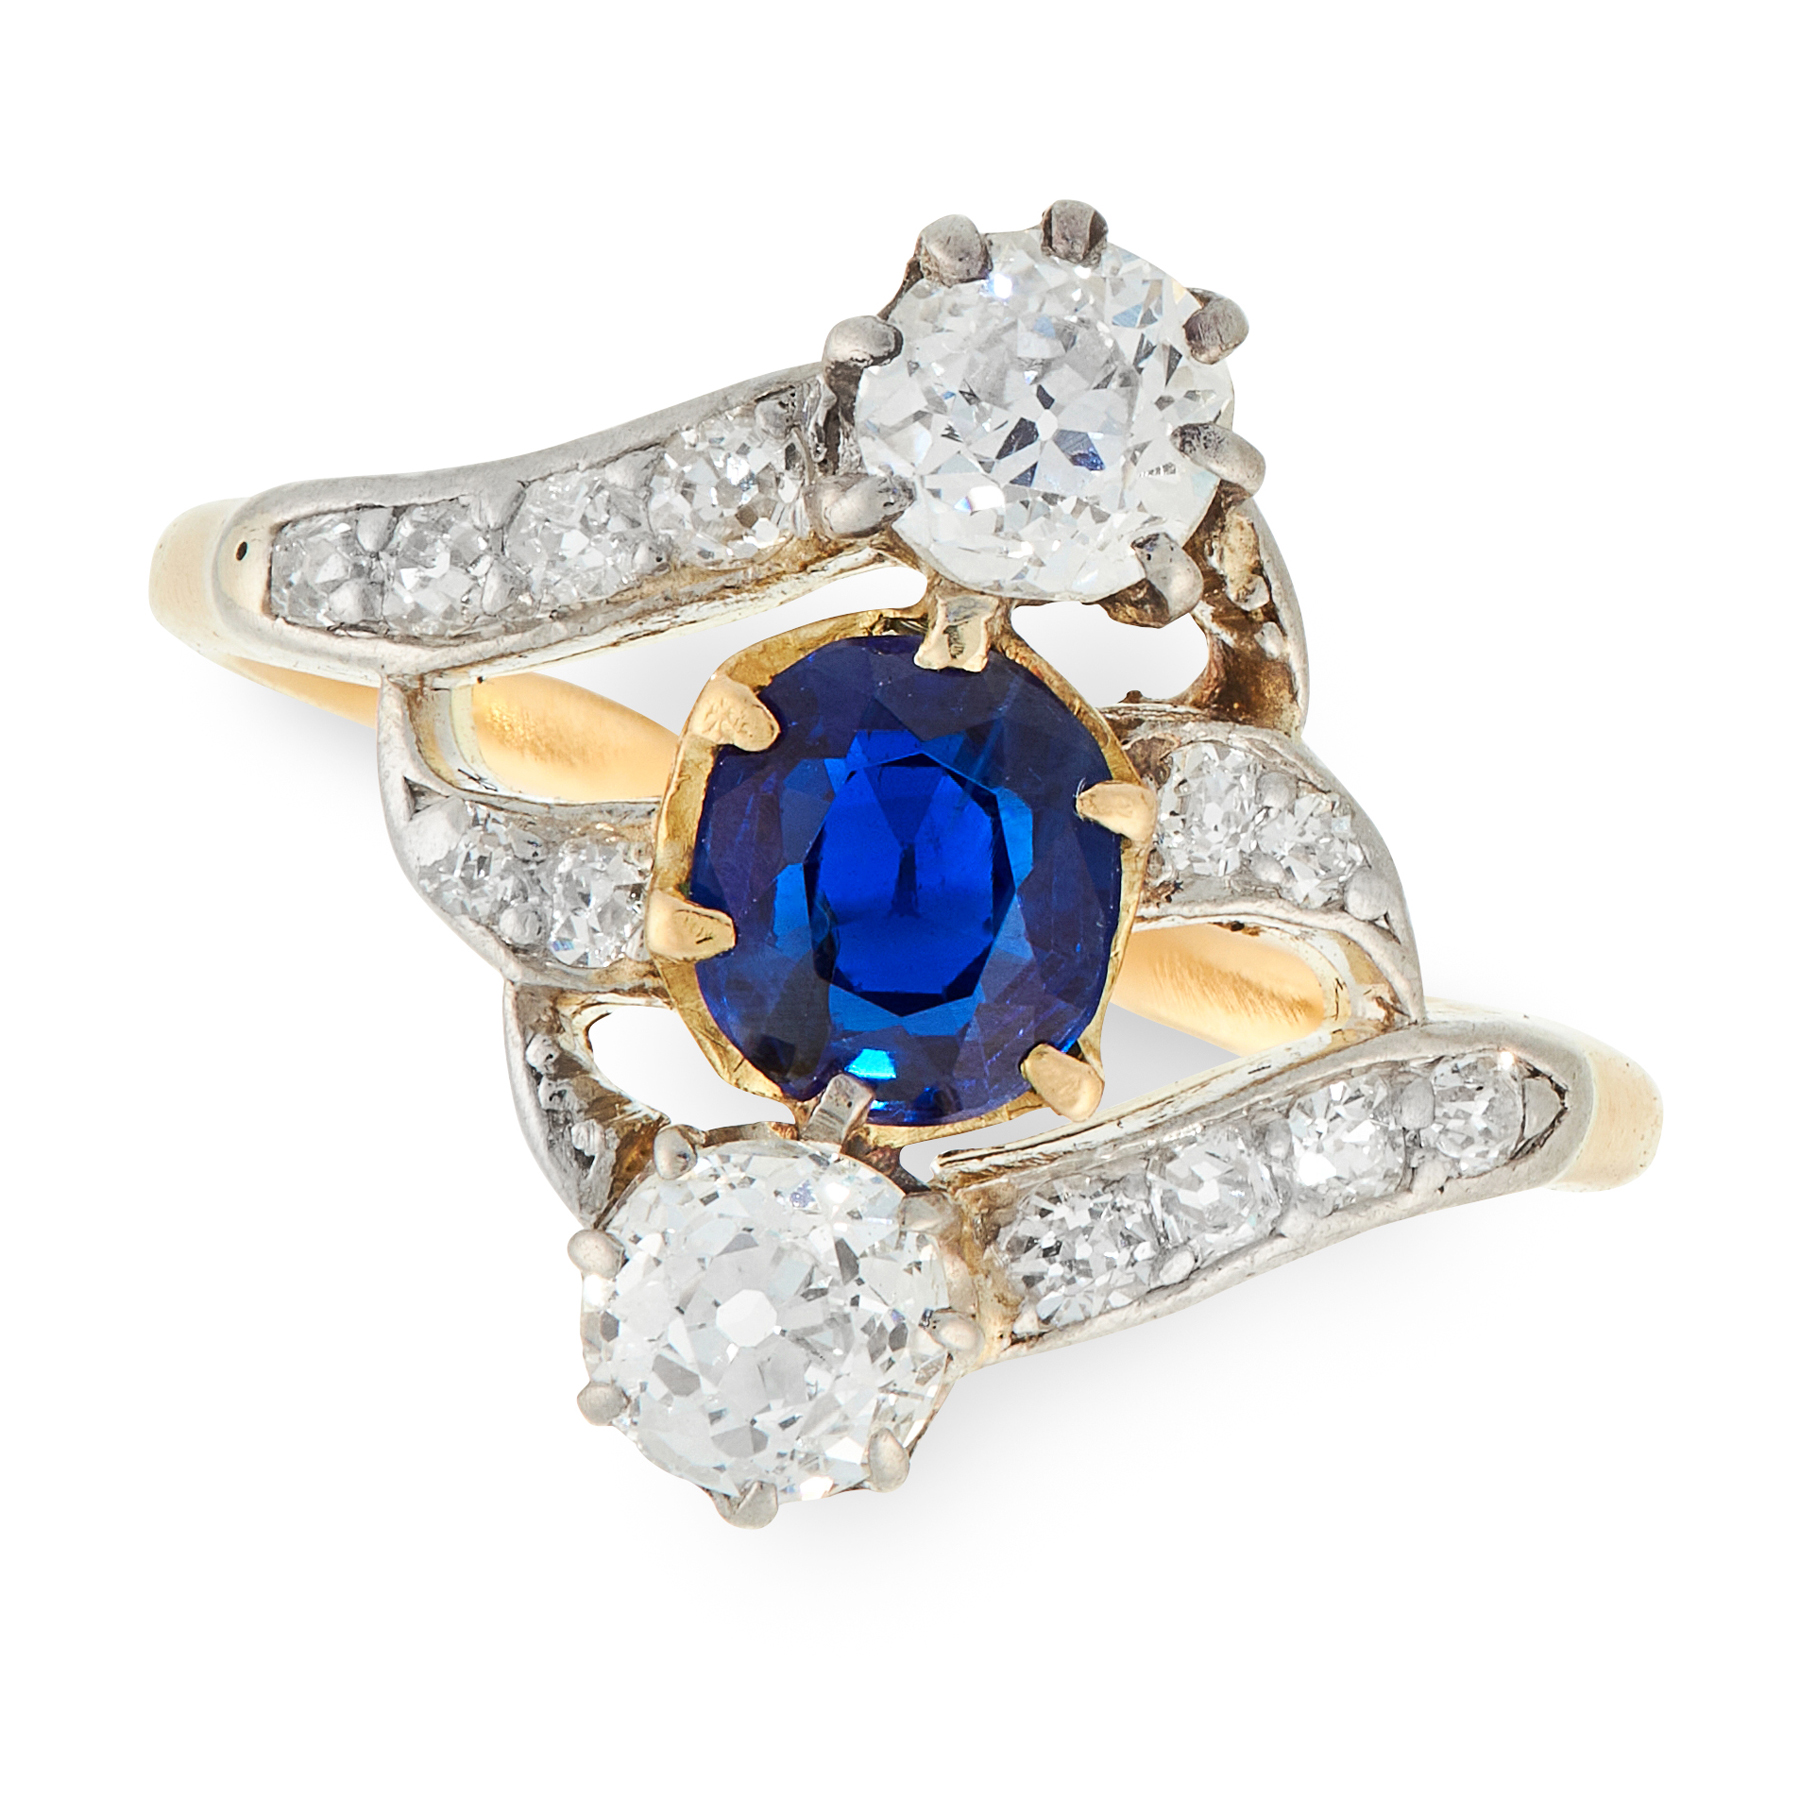 AN ANTIQUE SAPPHIRE AND DIAMOND RING in high carat yellow gold, set with a central cushion cut